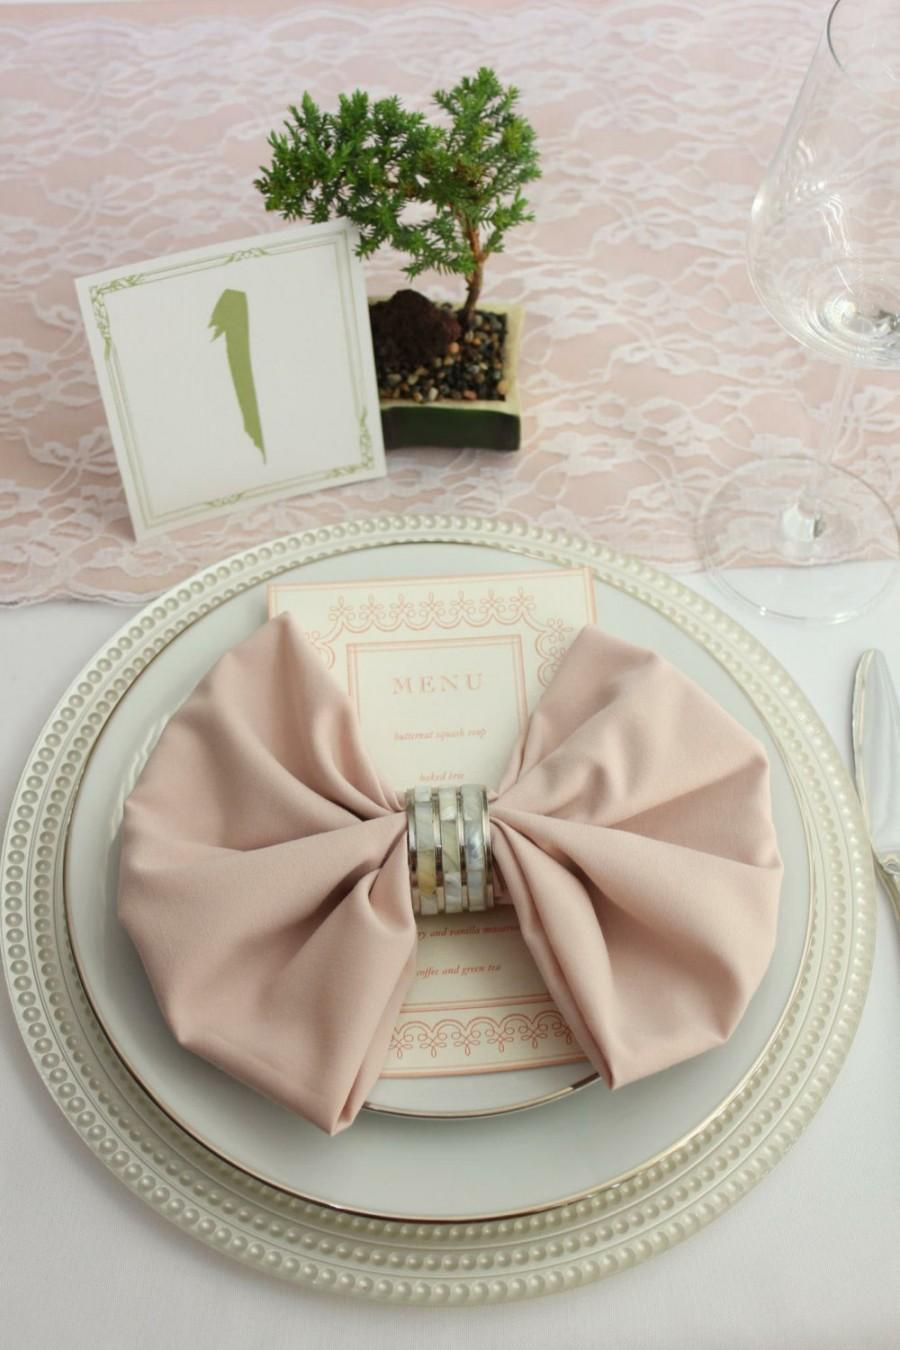 Blush Napkin For Weddings 20 Inch Blush Napkins 2477314